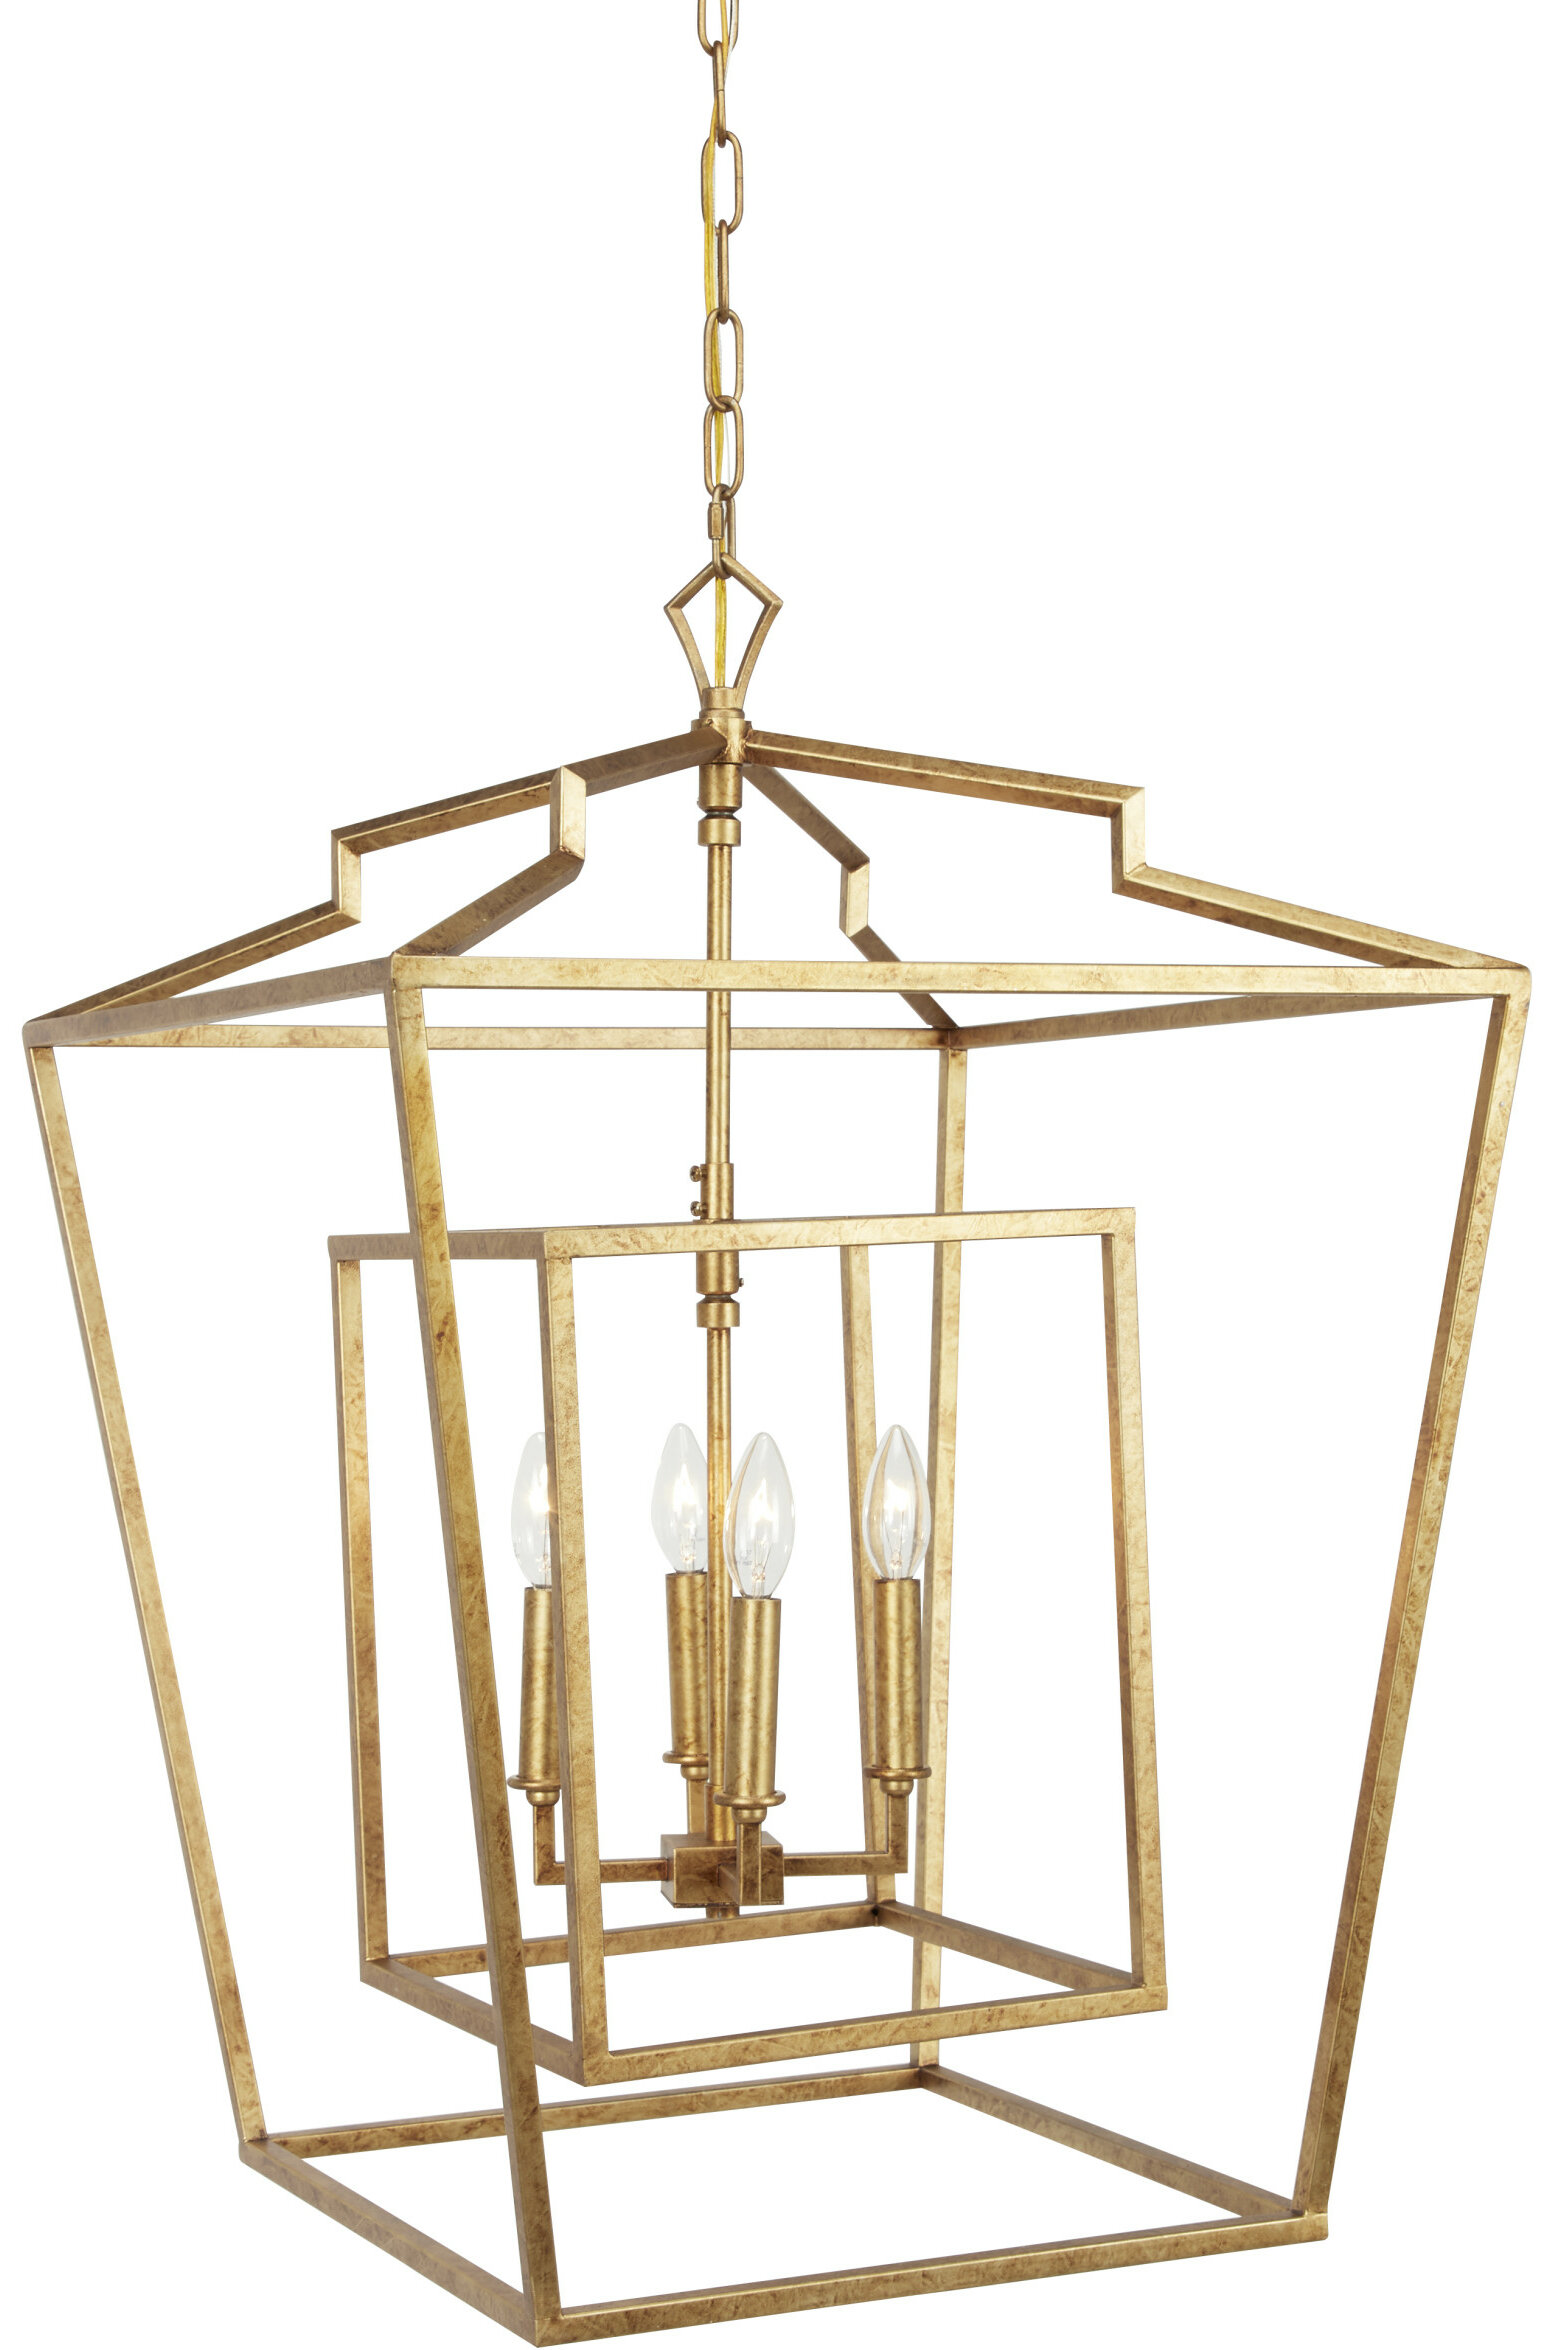 Wrought Studio Matherne 4 Light Lantern Geometric Chandelier Reviews Wayfair